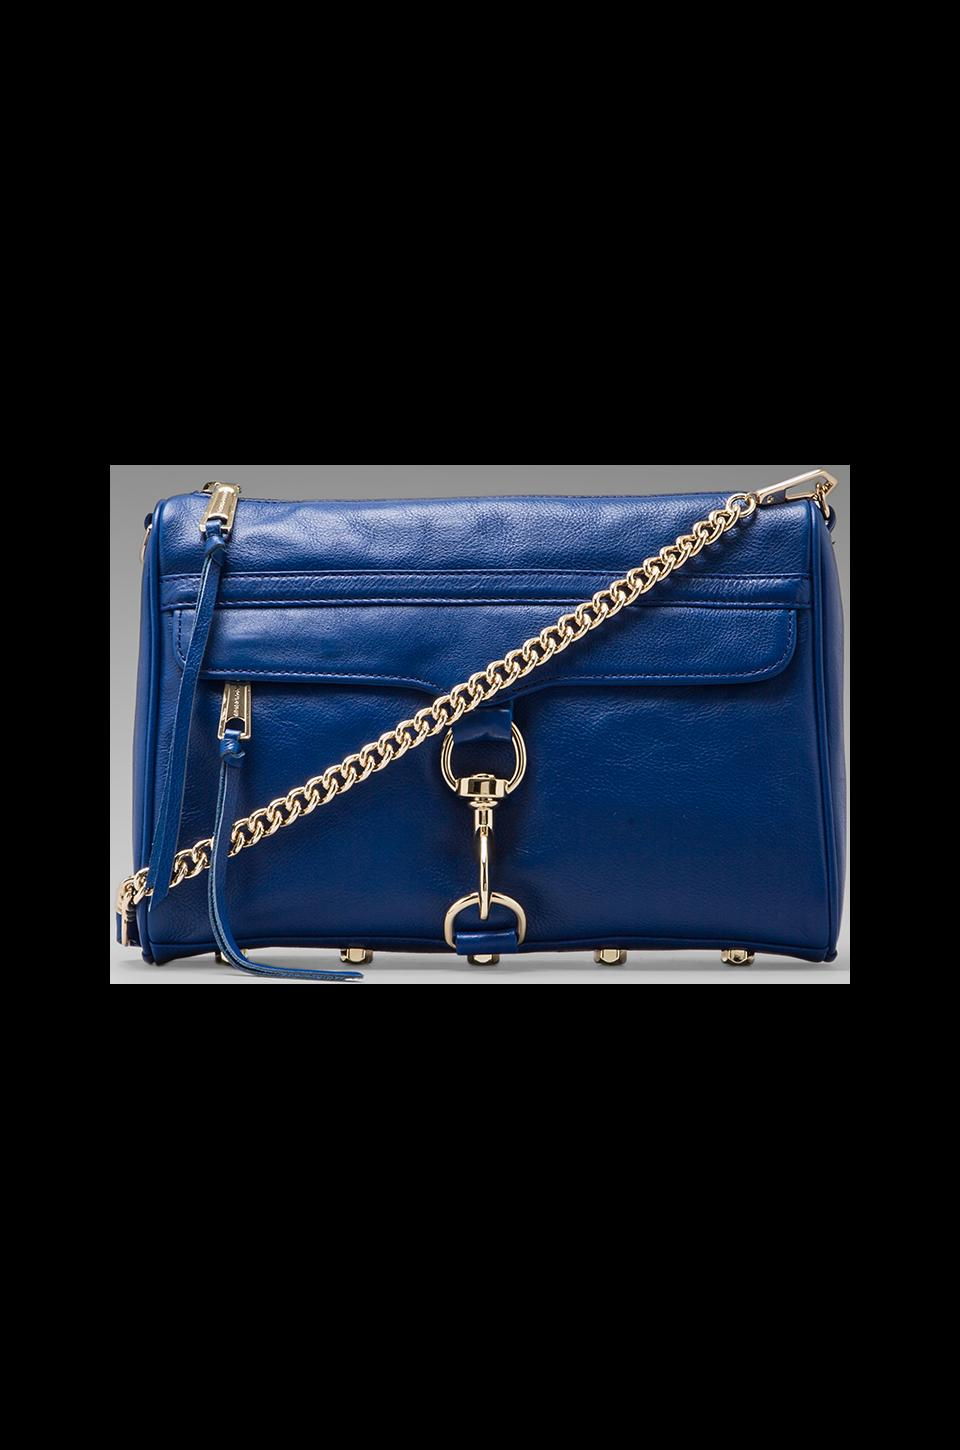 Rebecca Minkoff Mac in Electric Blue